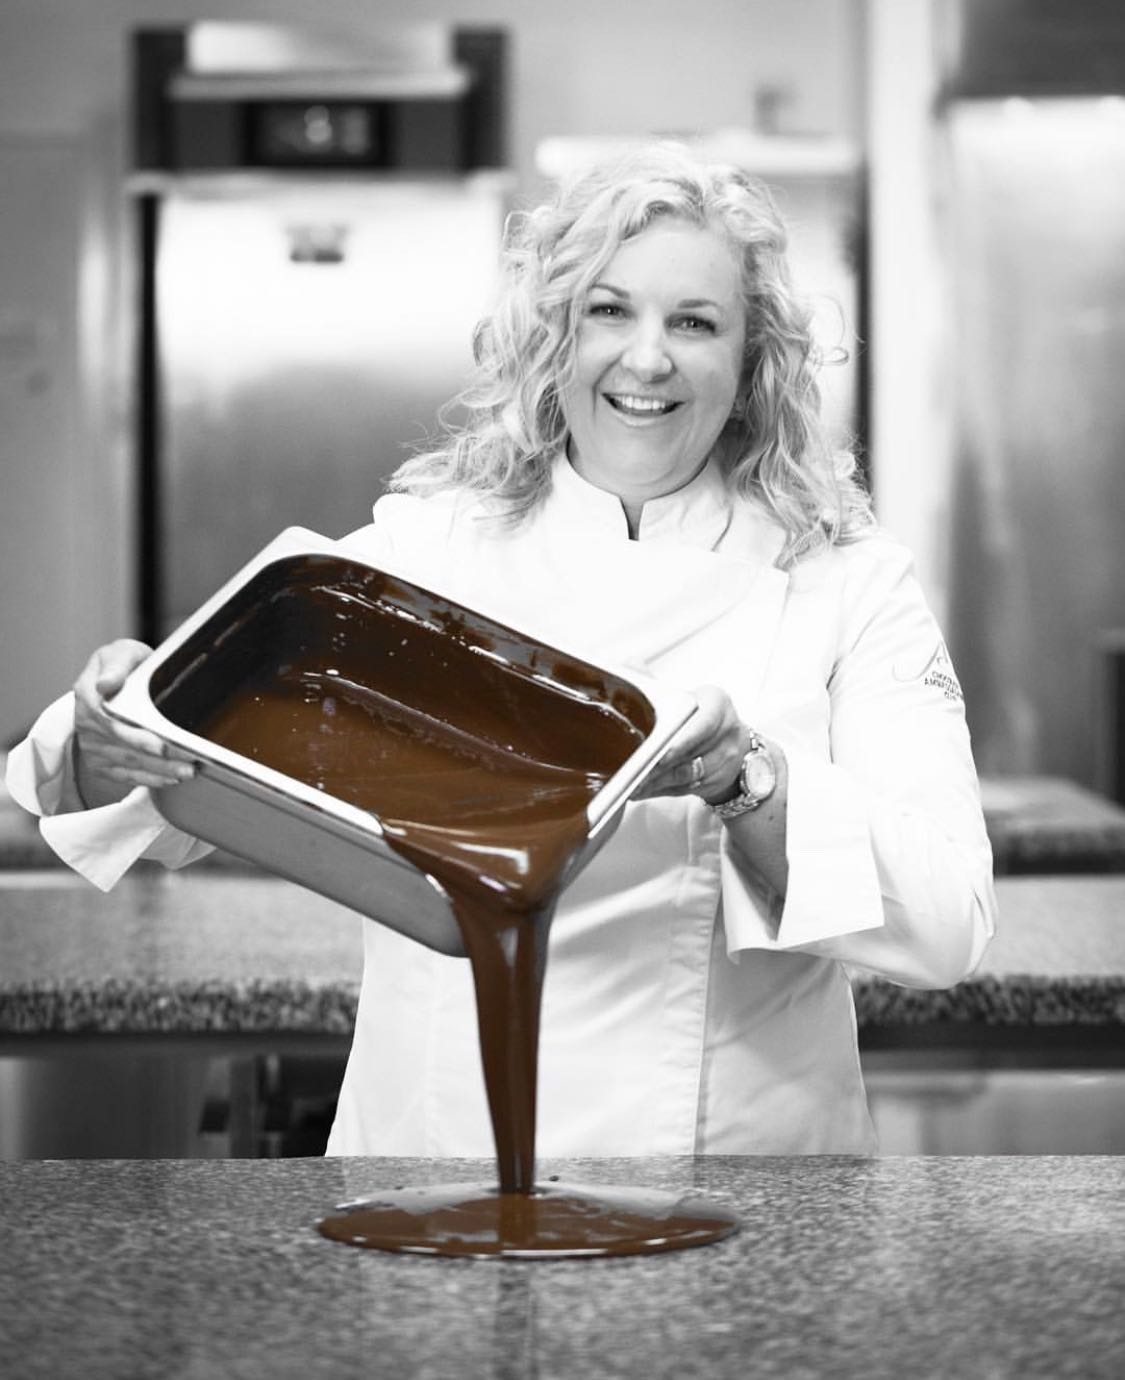 Paddl-Co-further-innovate-hospitality-sector-Savour Chocolate-&-Patisserie-School-Kirsten-Tibballs.JPG